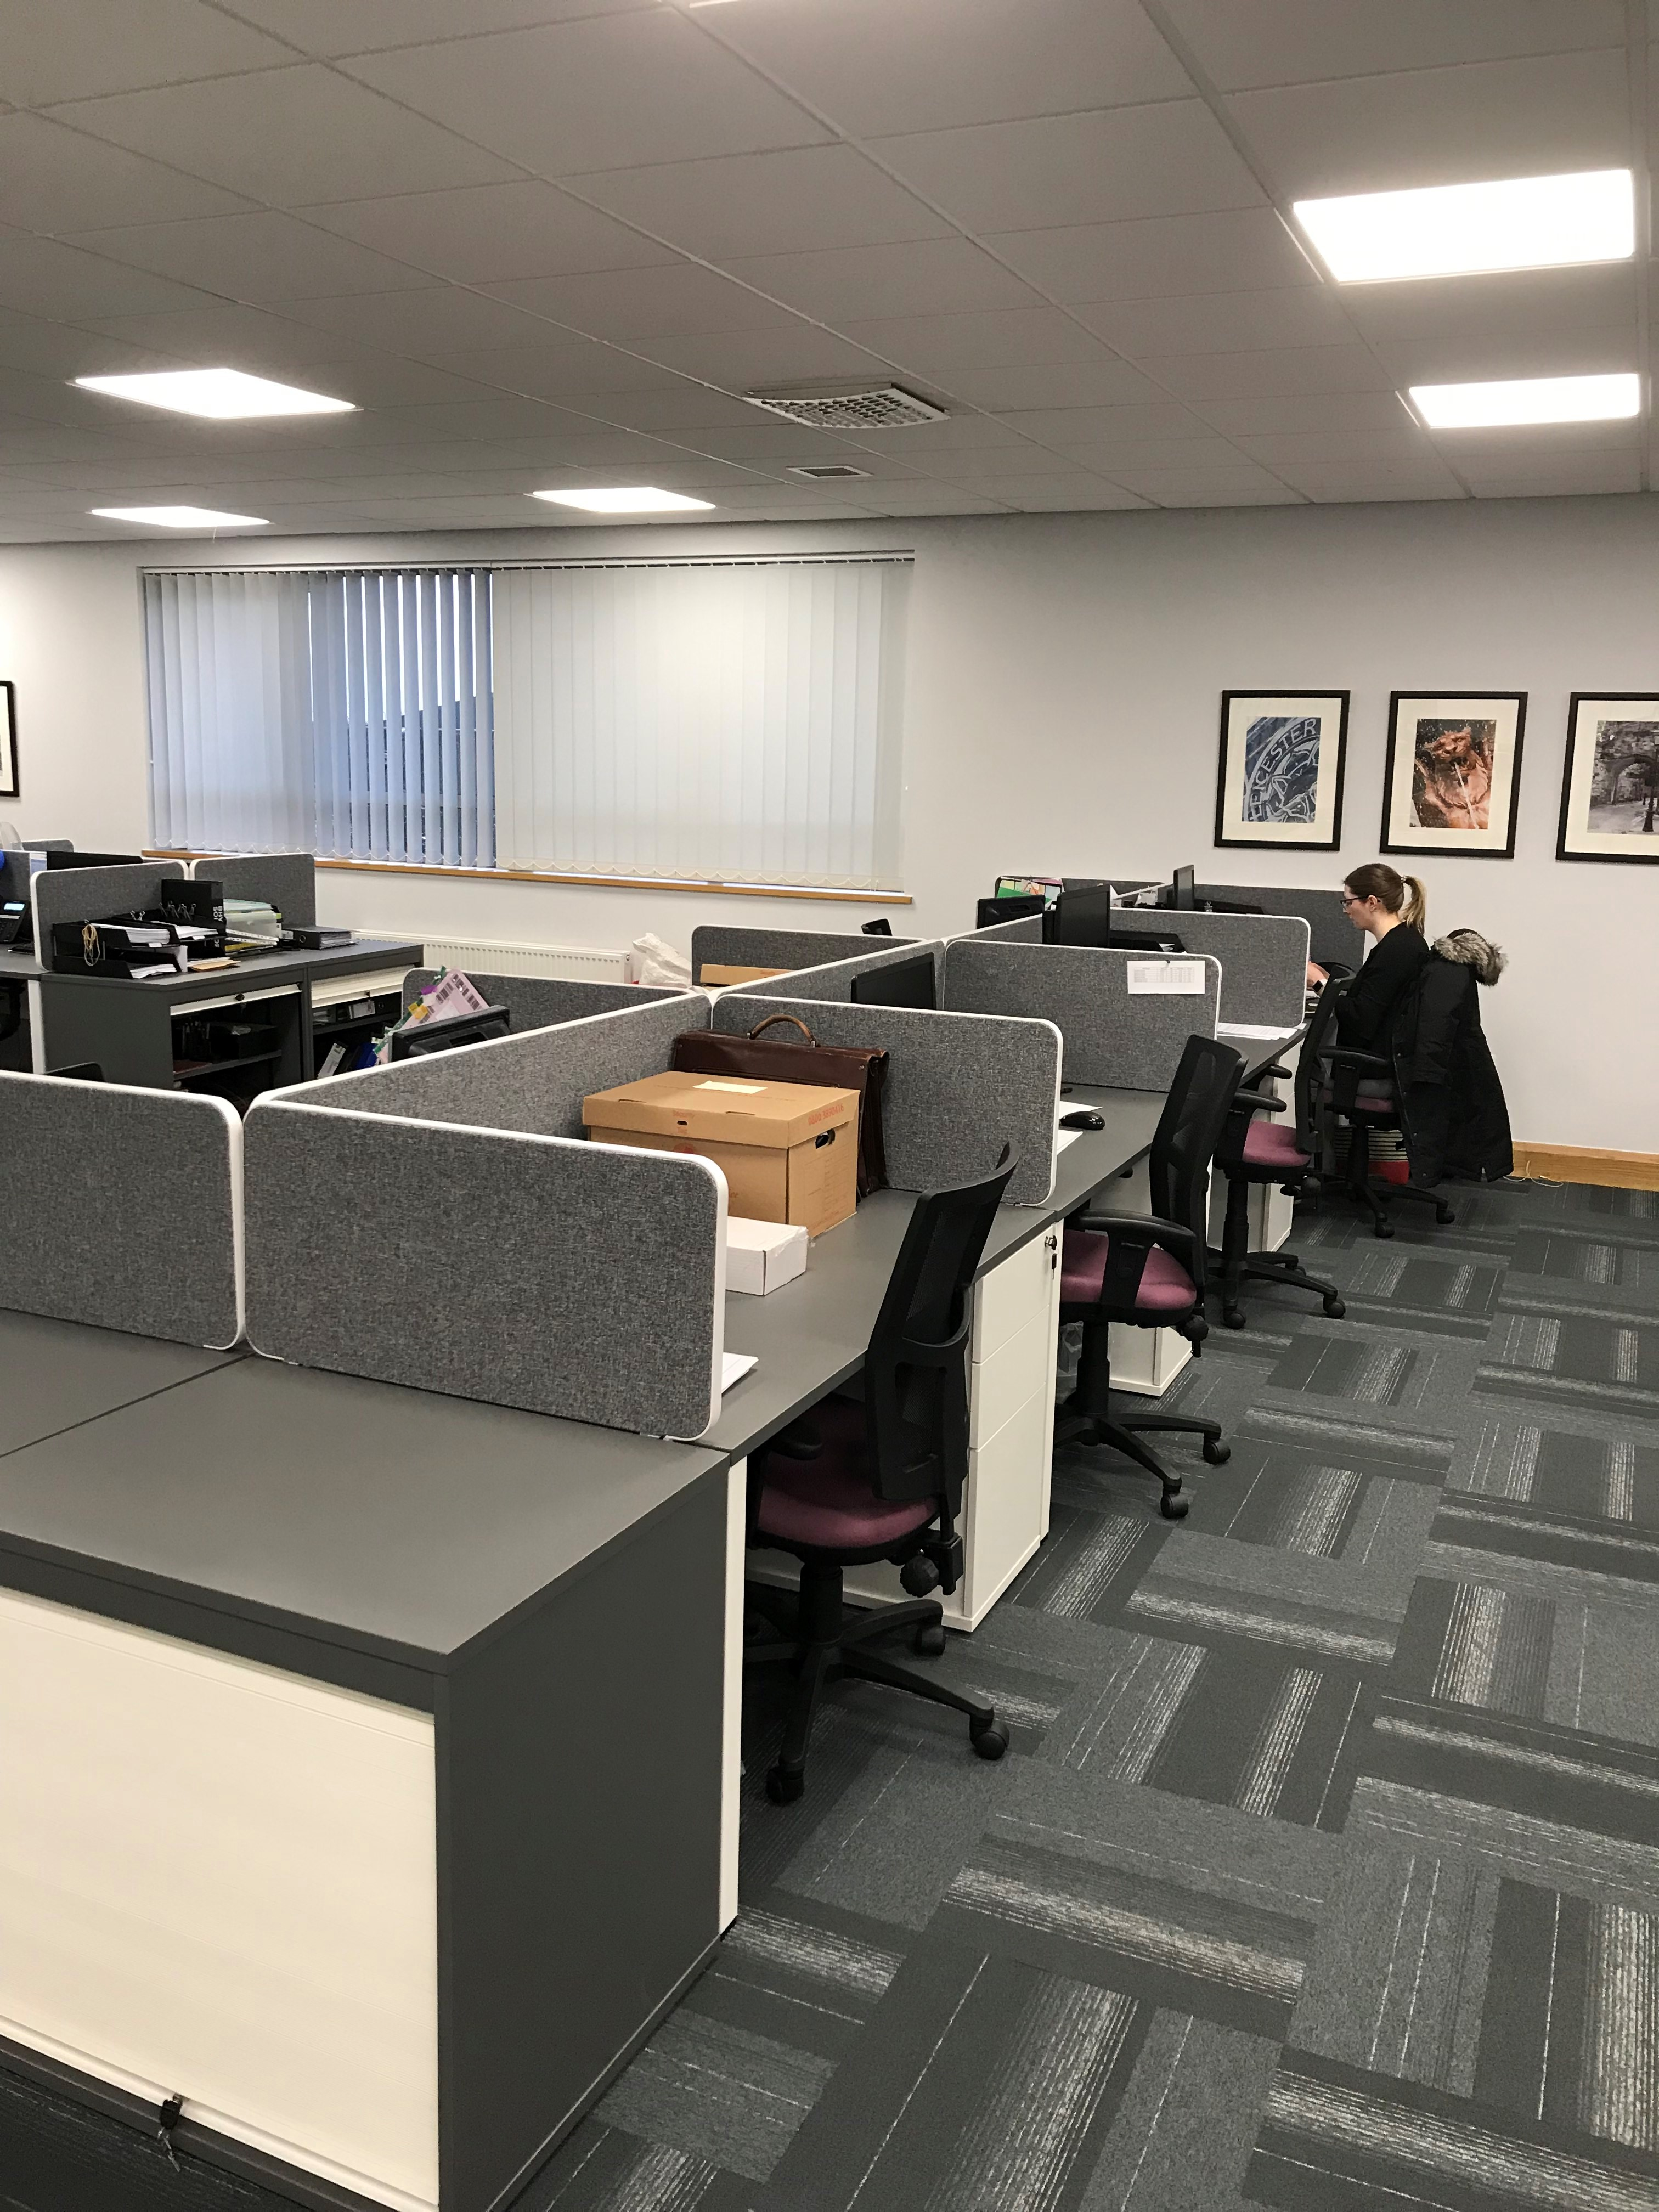 6 new desks with dividers in place of where the filing cabinets stood, Young female with pony tail working on end desk